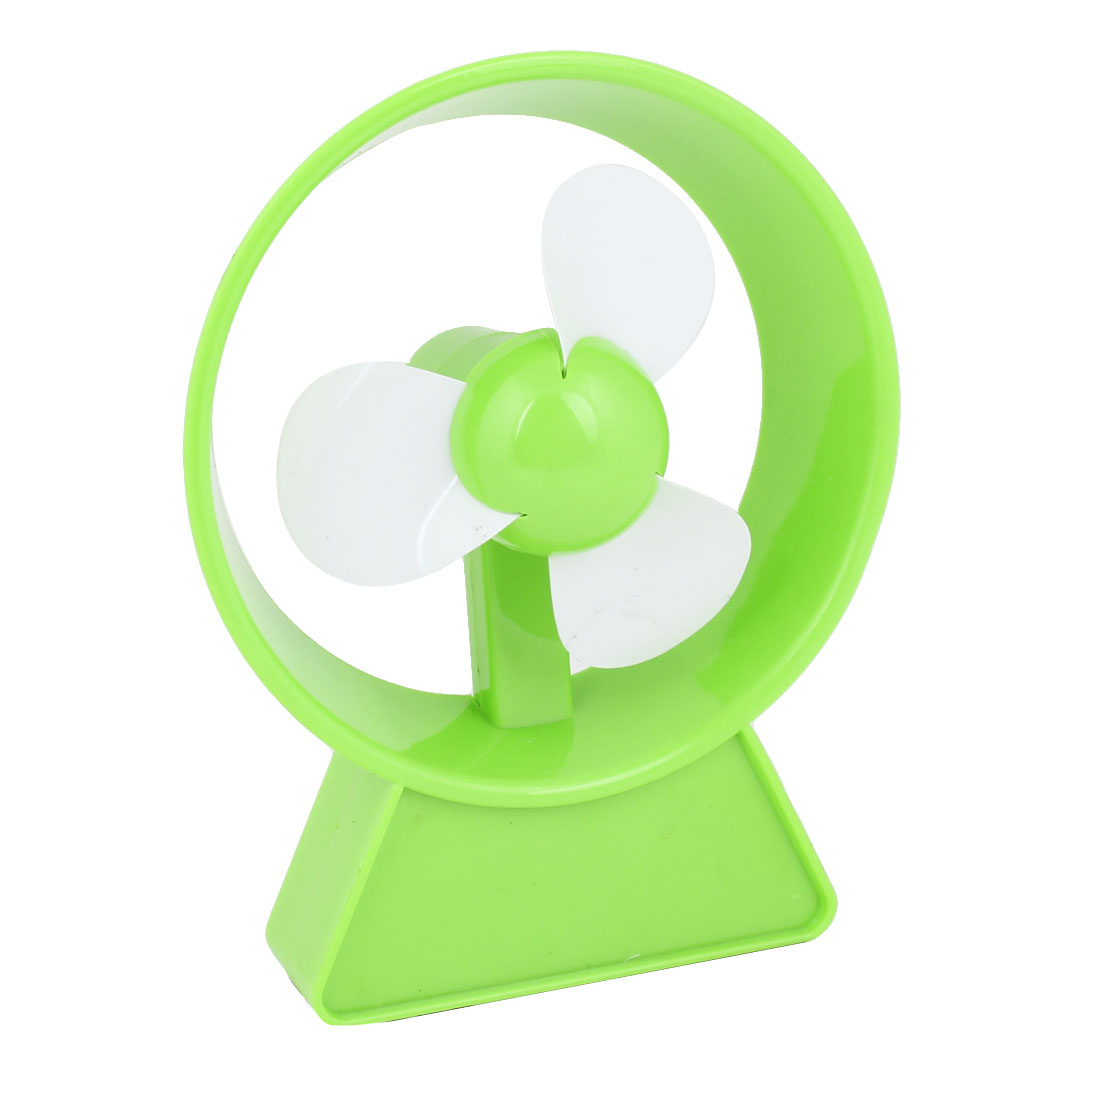 Handy Desktop Notebook Plastic Green Round Frame On/Off Switch Controlled Fan